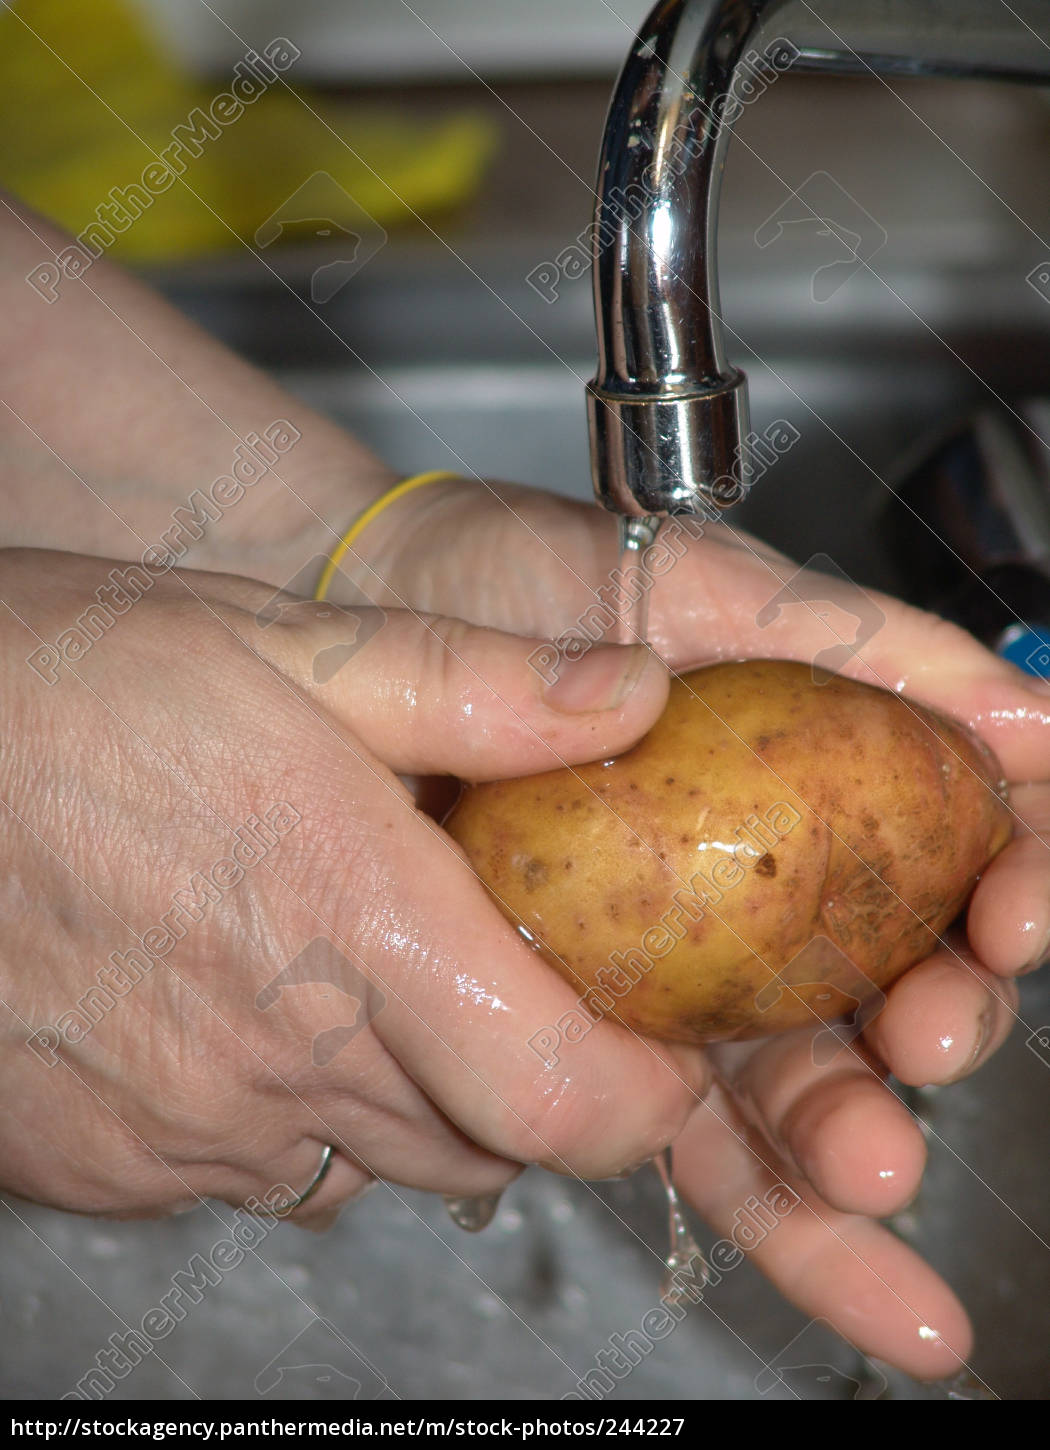 peeling, potatoes - 244227